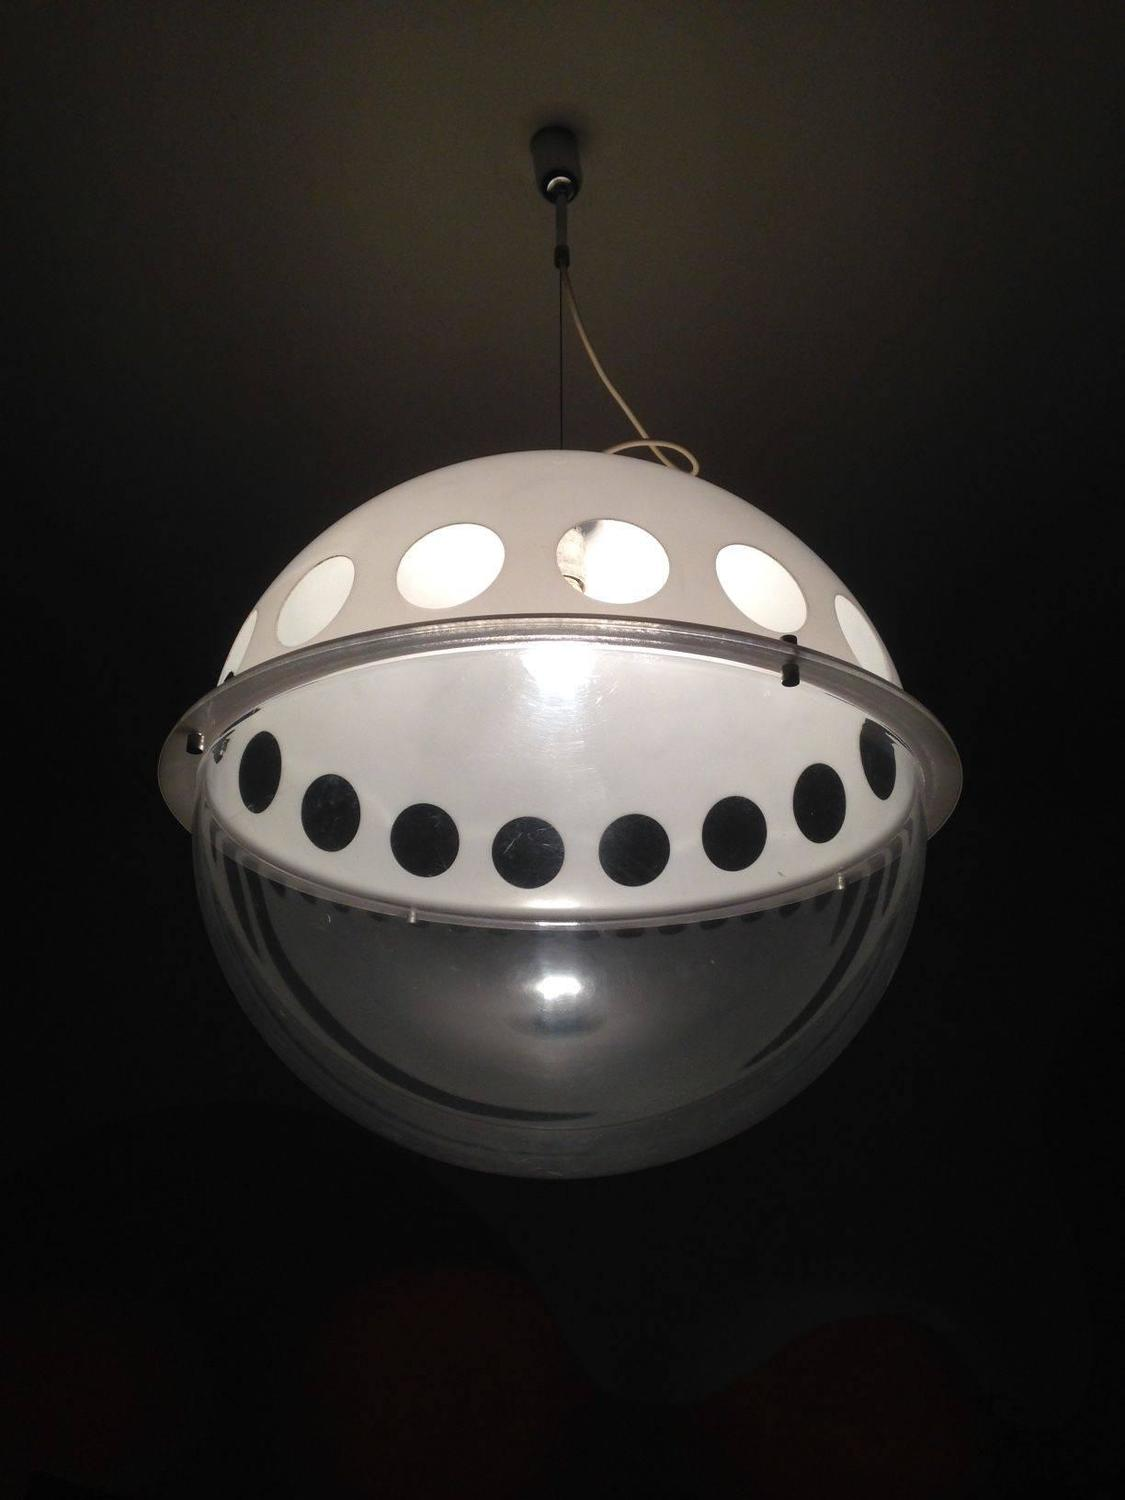 1970s Pendant Lamp by Zonca for Minilumi For Sale at 1stdibs